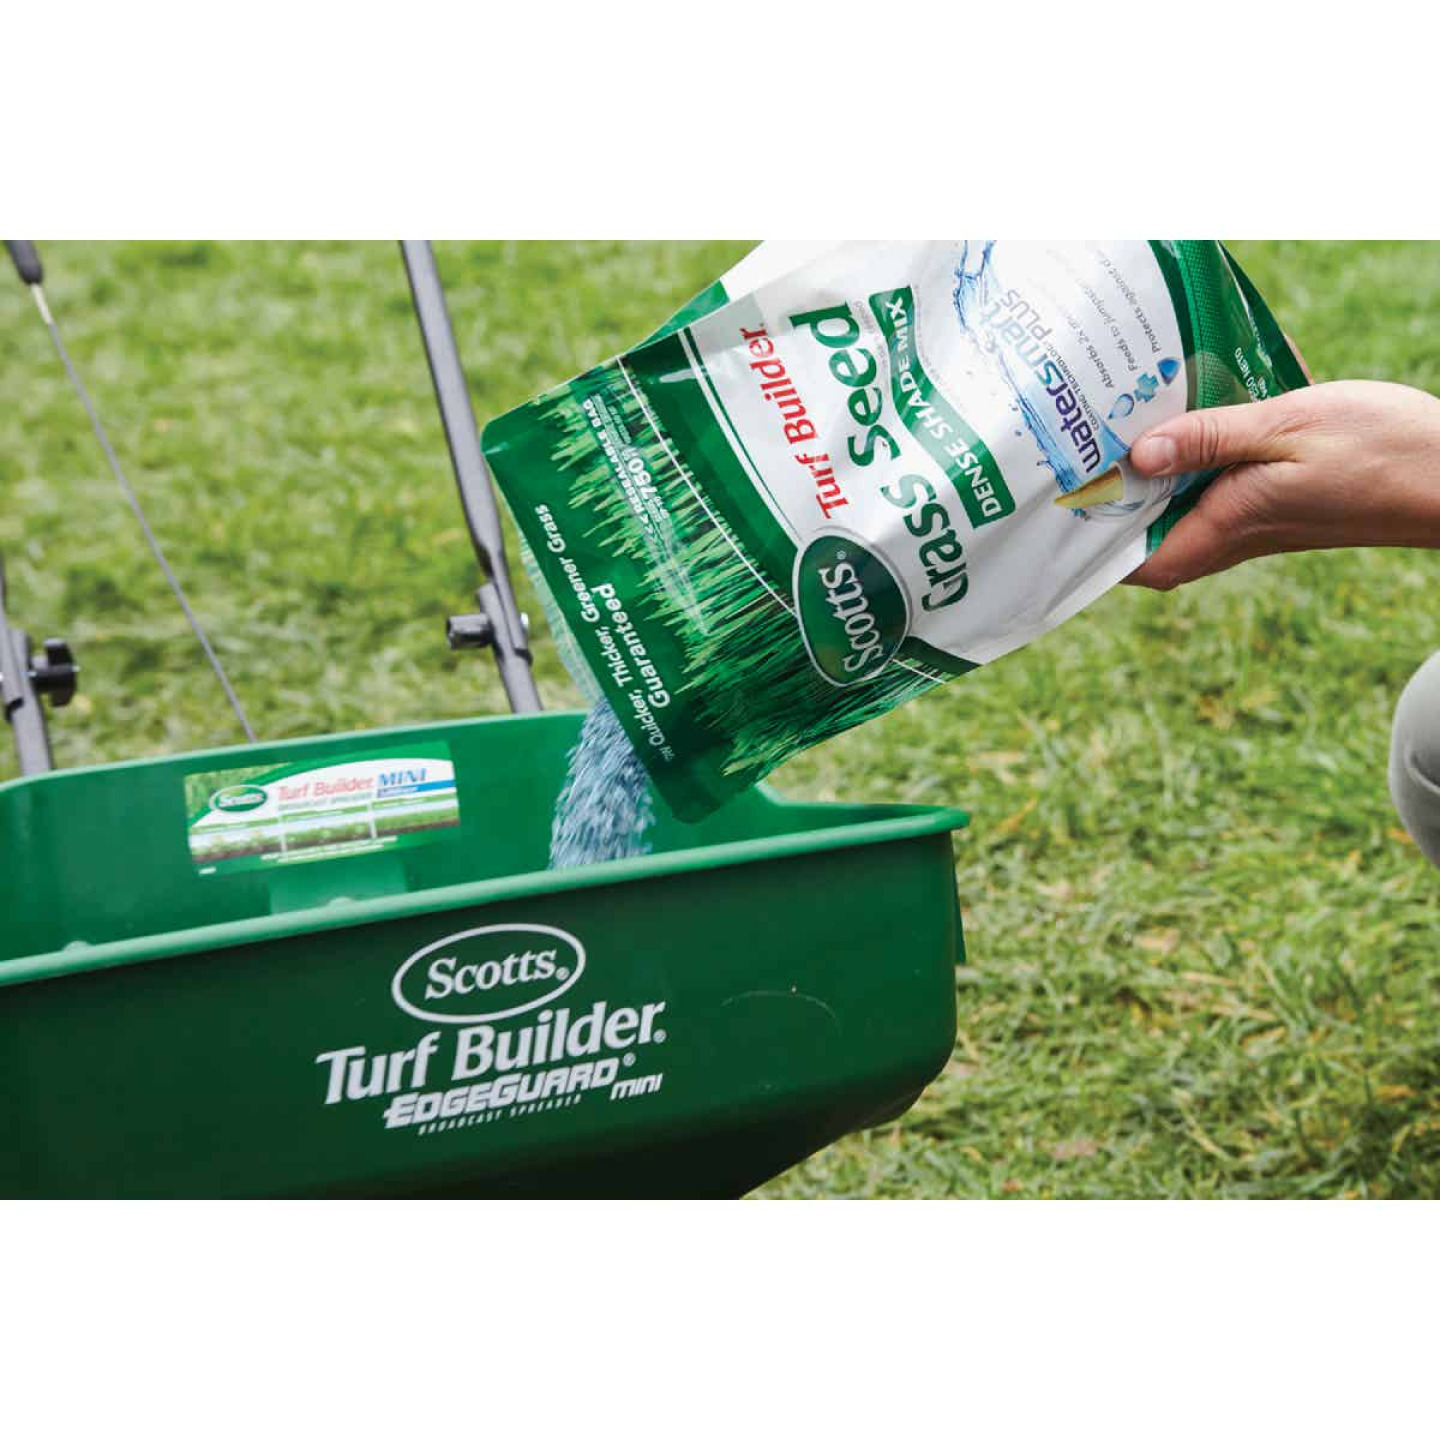 Scotts Turf Builder 3 Lb. Up To 750 Sq. Ft. Coverage Dense Shade Grass Seed Image 2